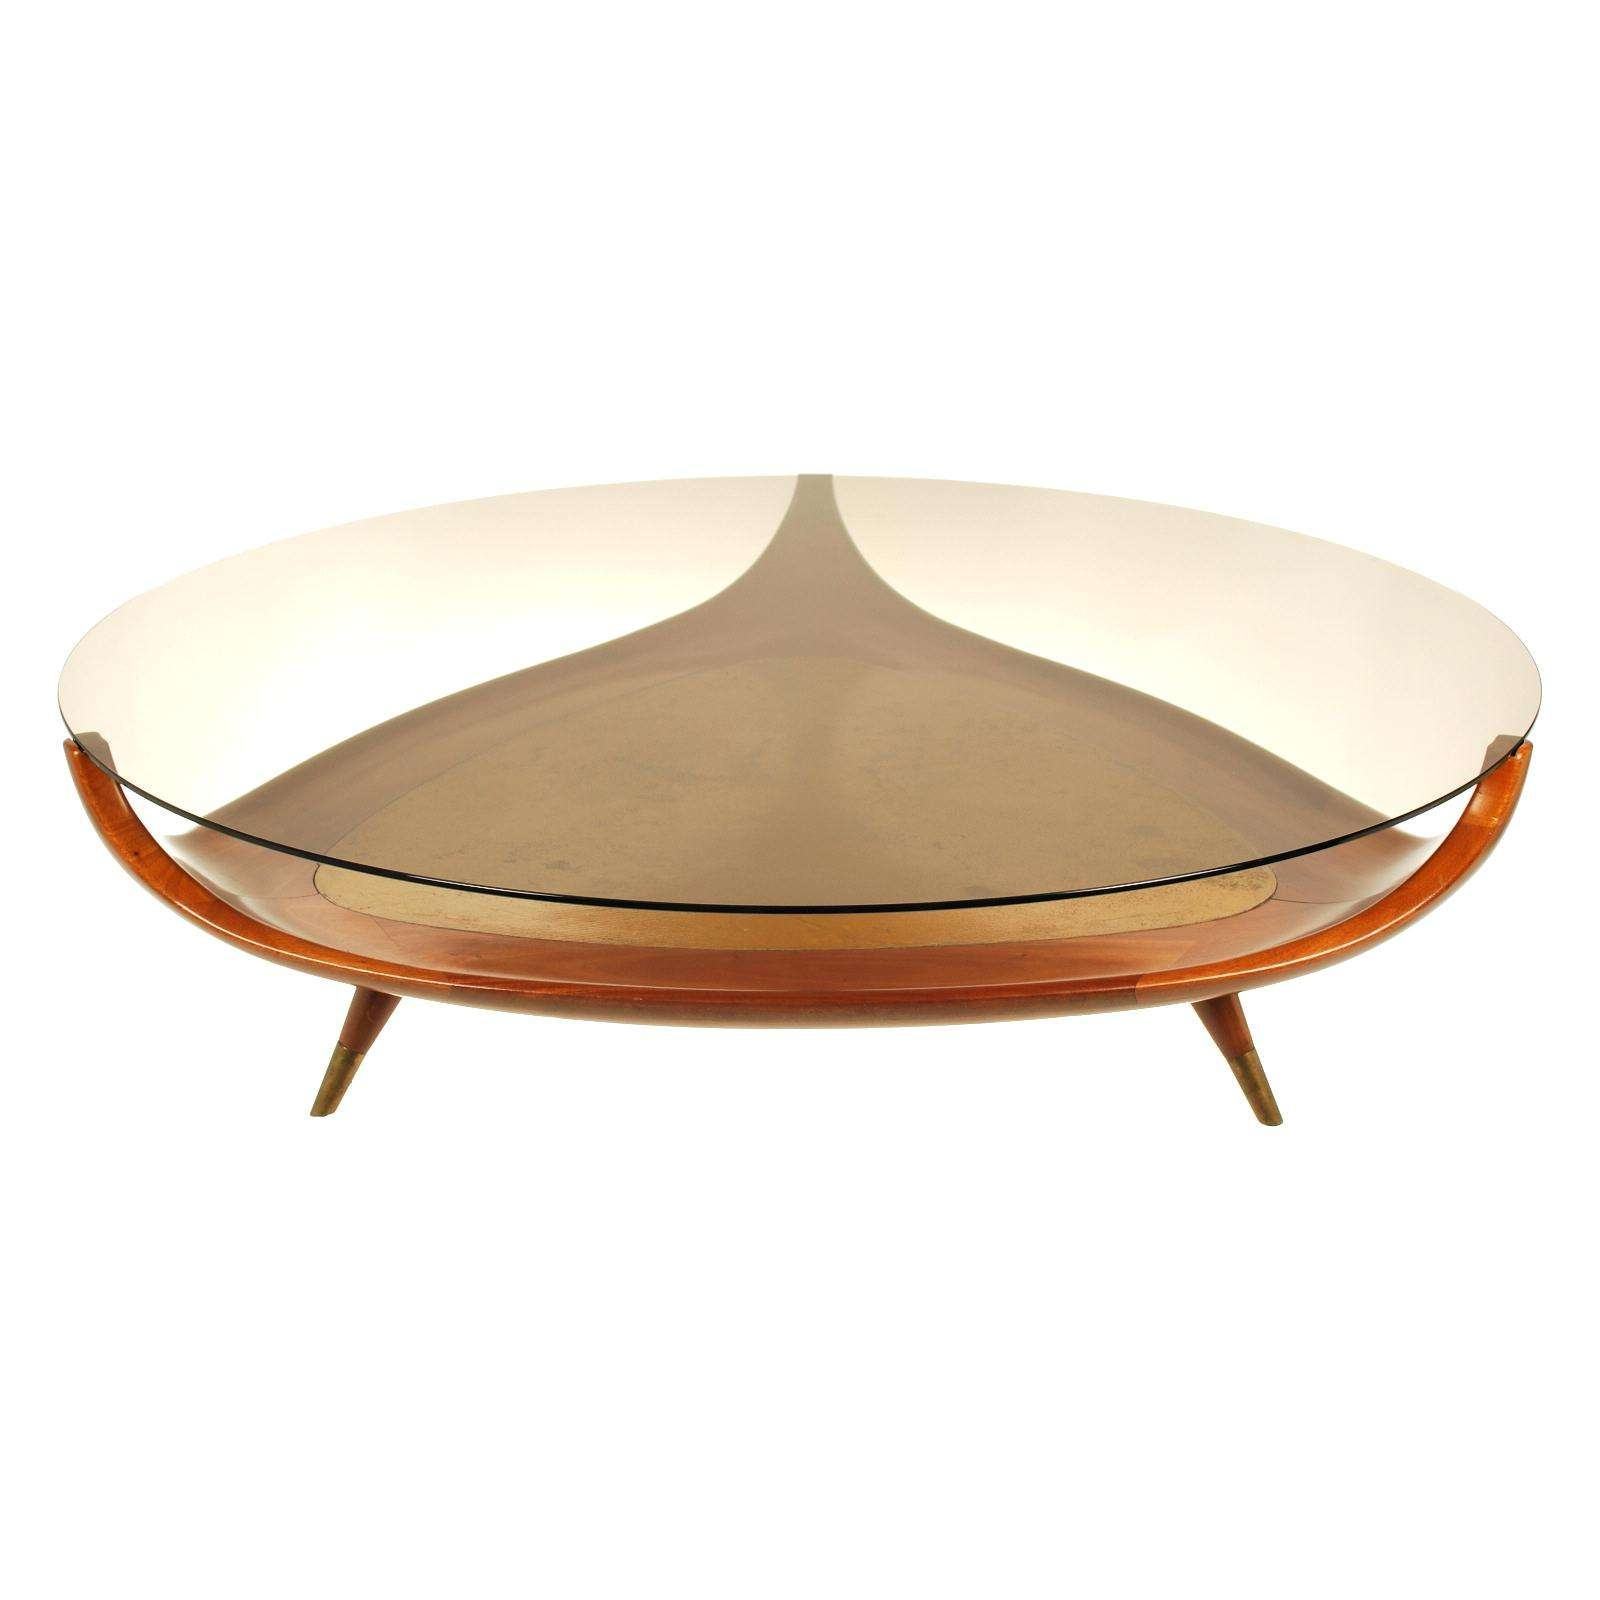 Vintage Brass Krusin Square Coffee Table In Oak With Glass Top Within Most Up To Date Retro Glass Top Coffee Tables (View 16 of 20)